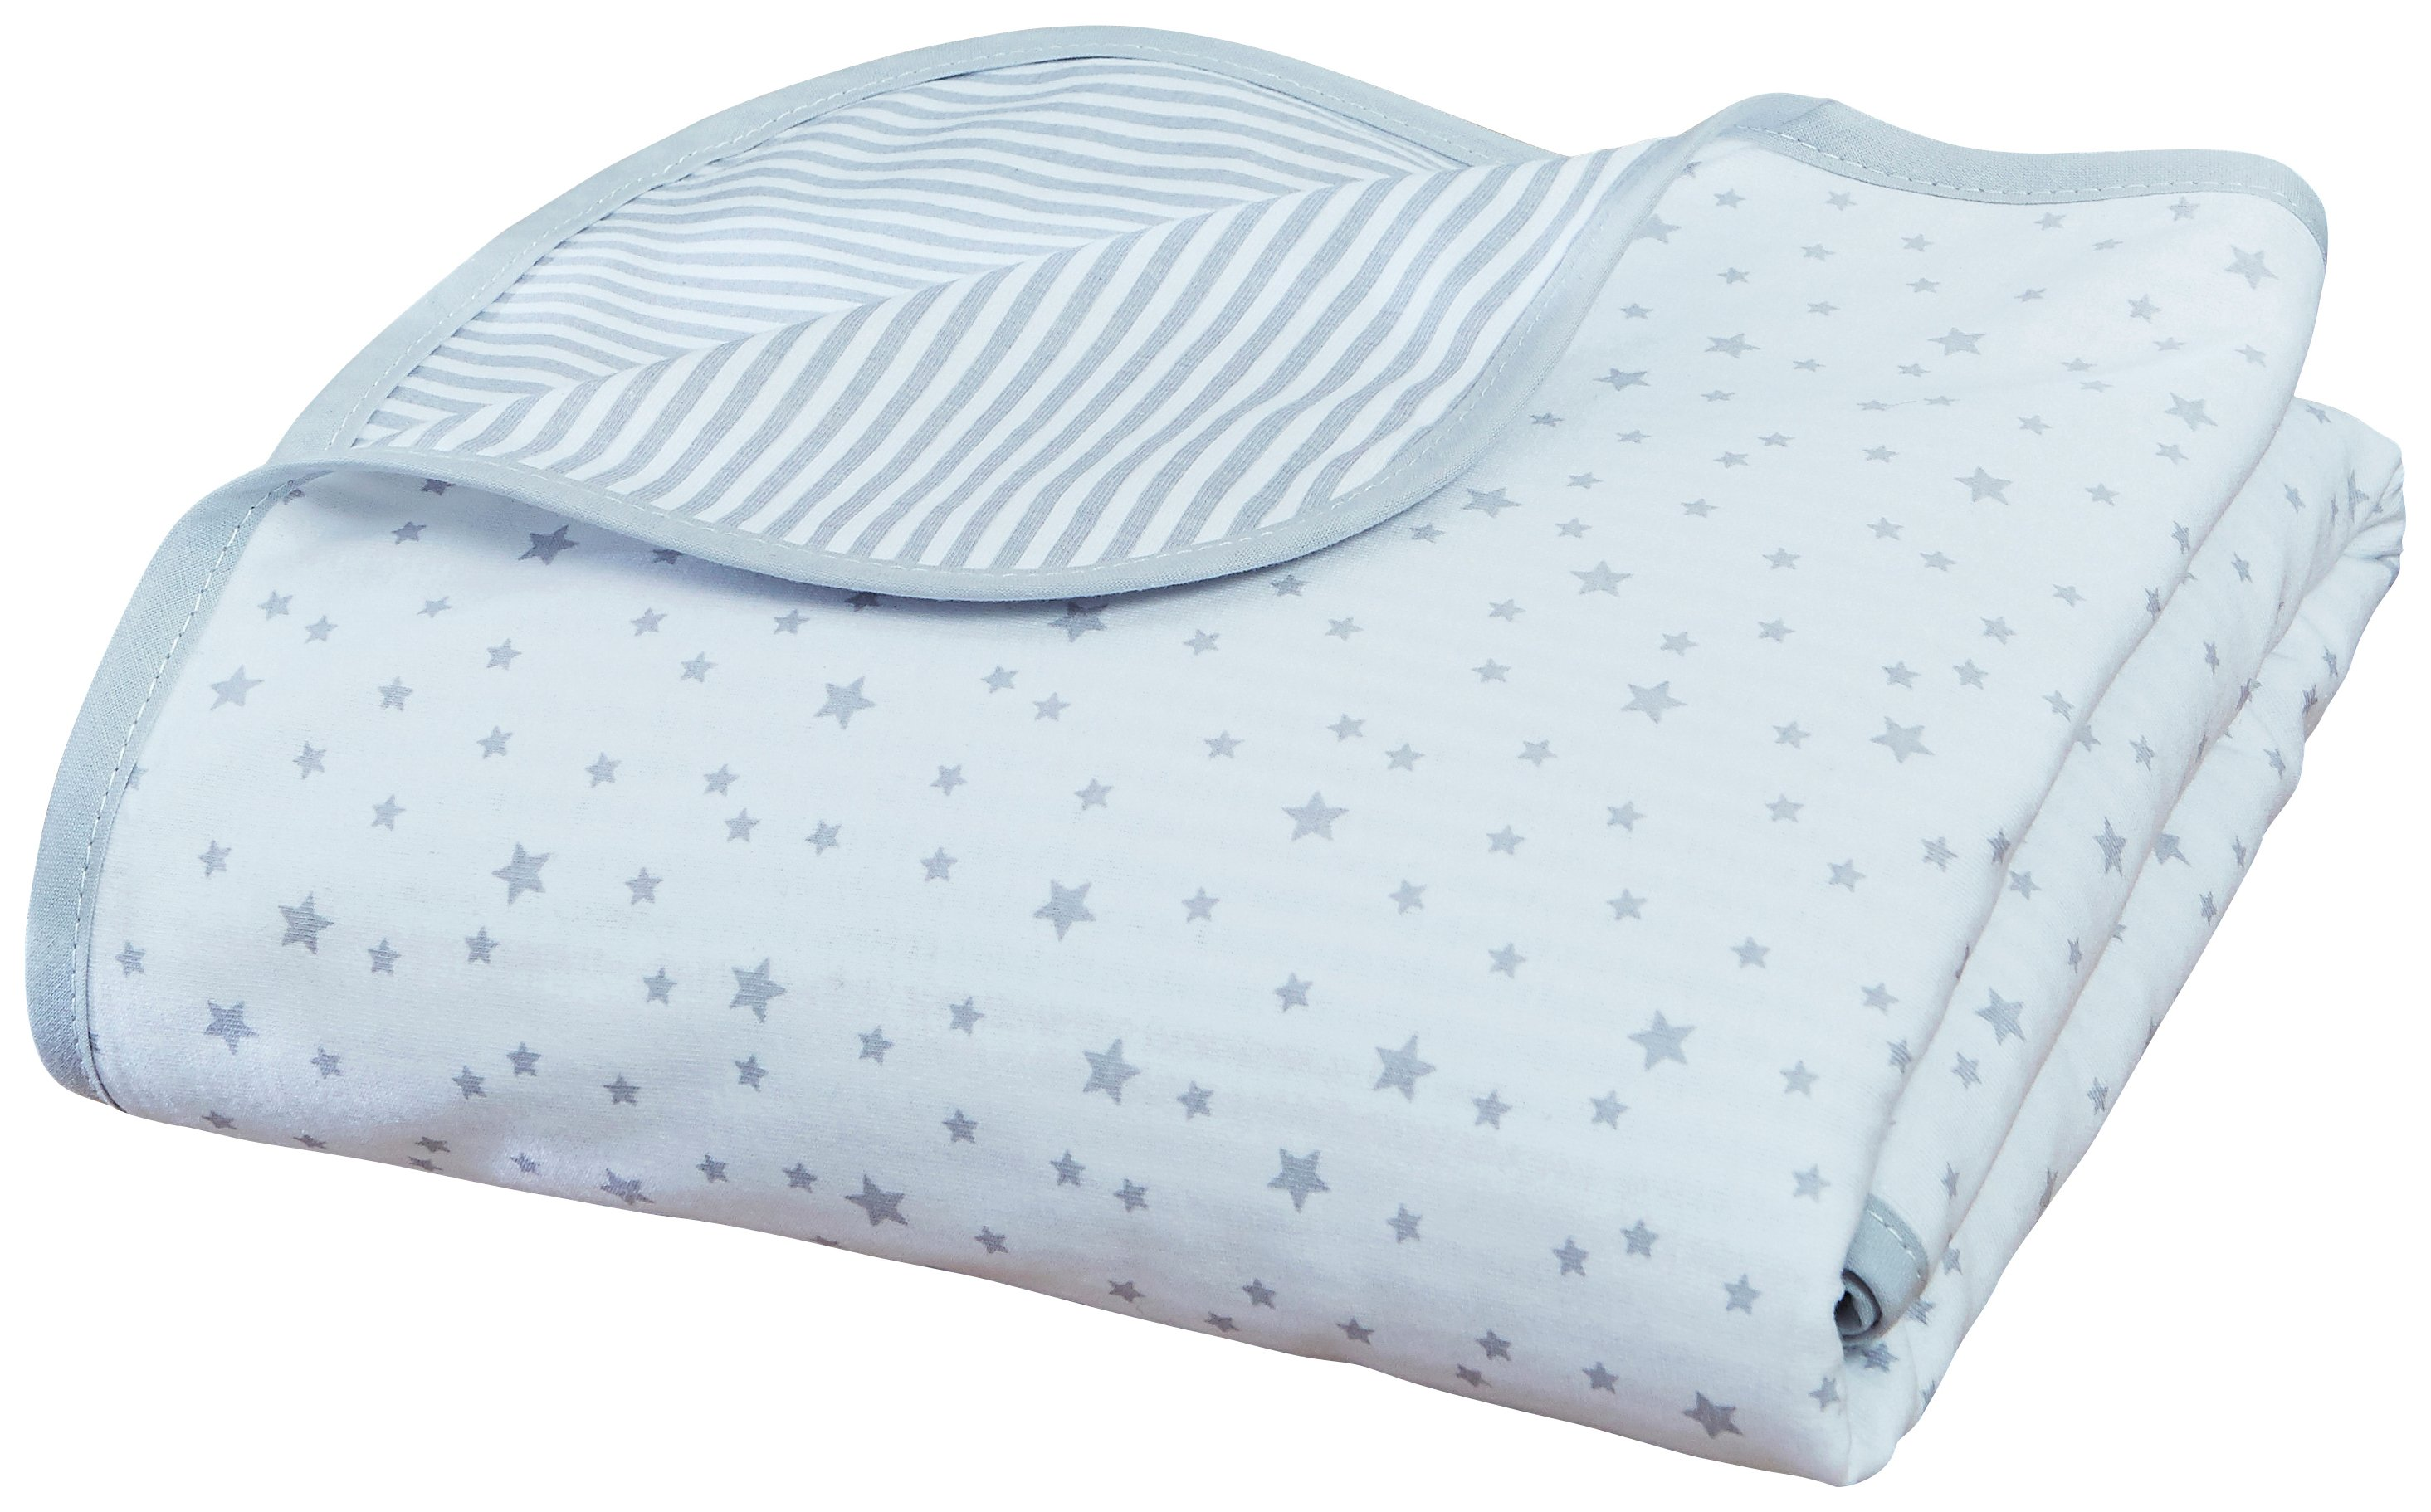 Clair De Lune Stars and Stripes Cot Blanket - Grey.